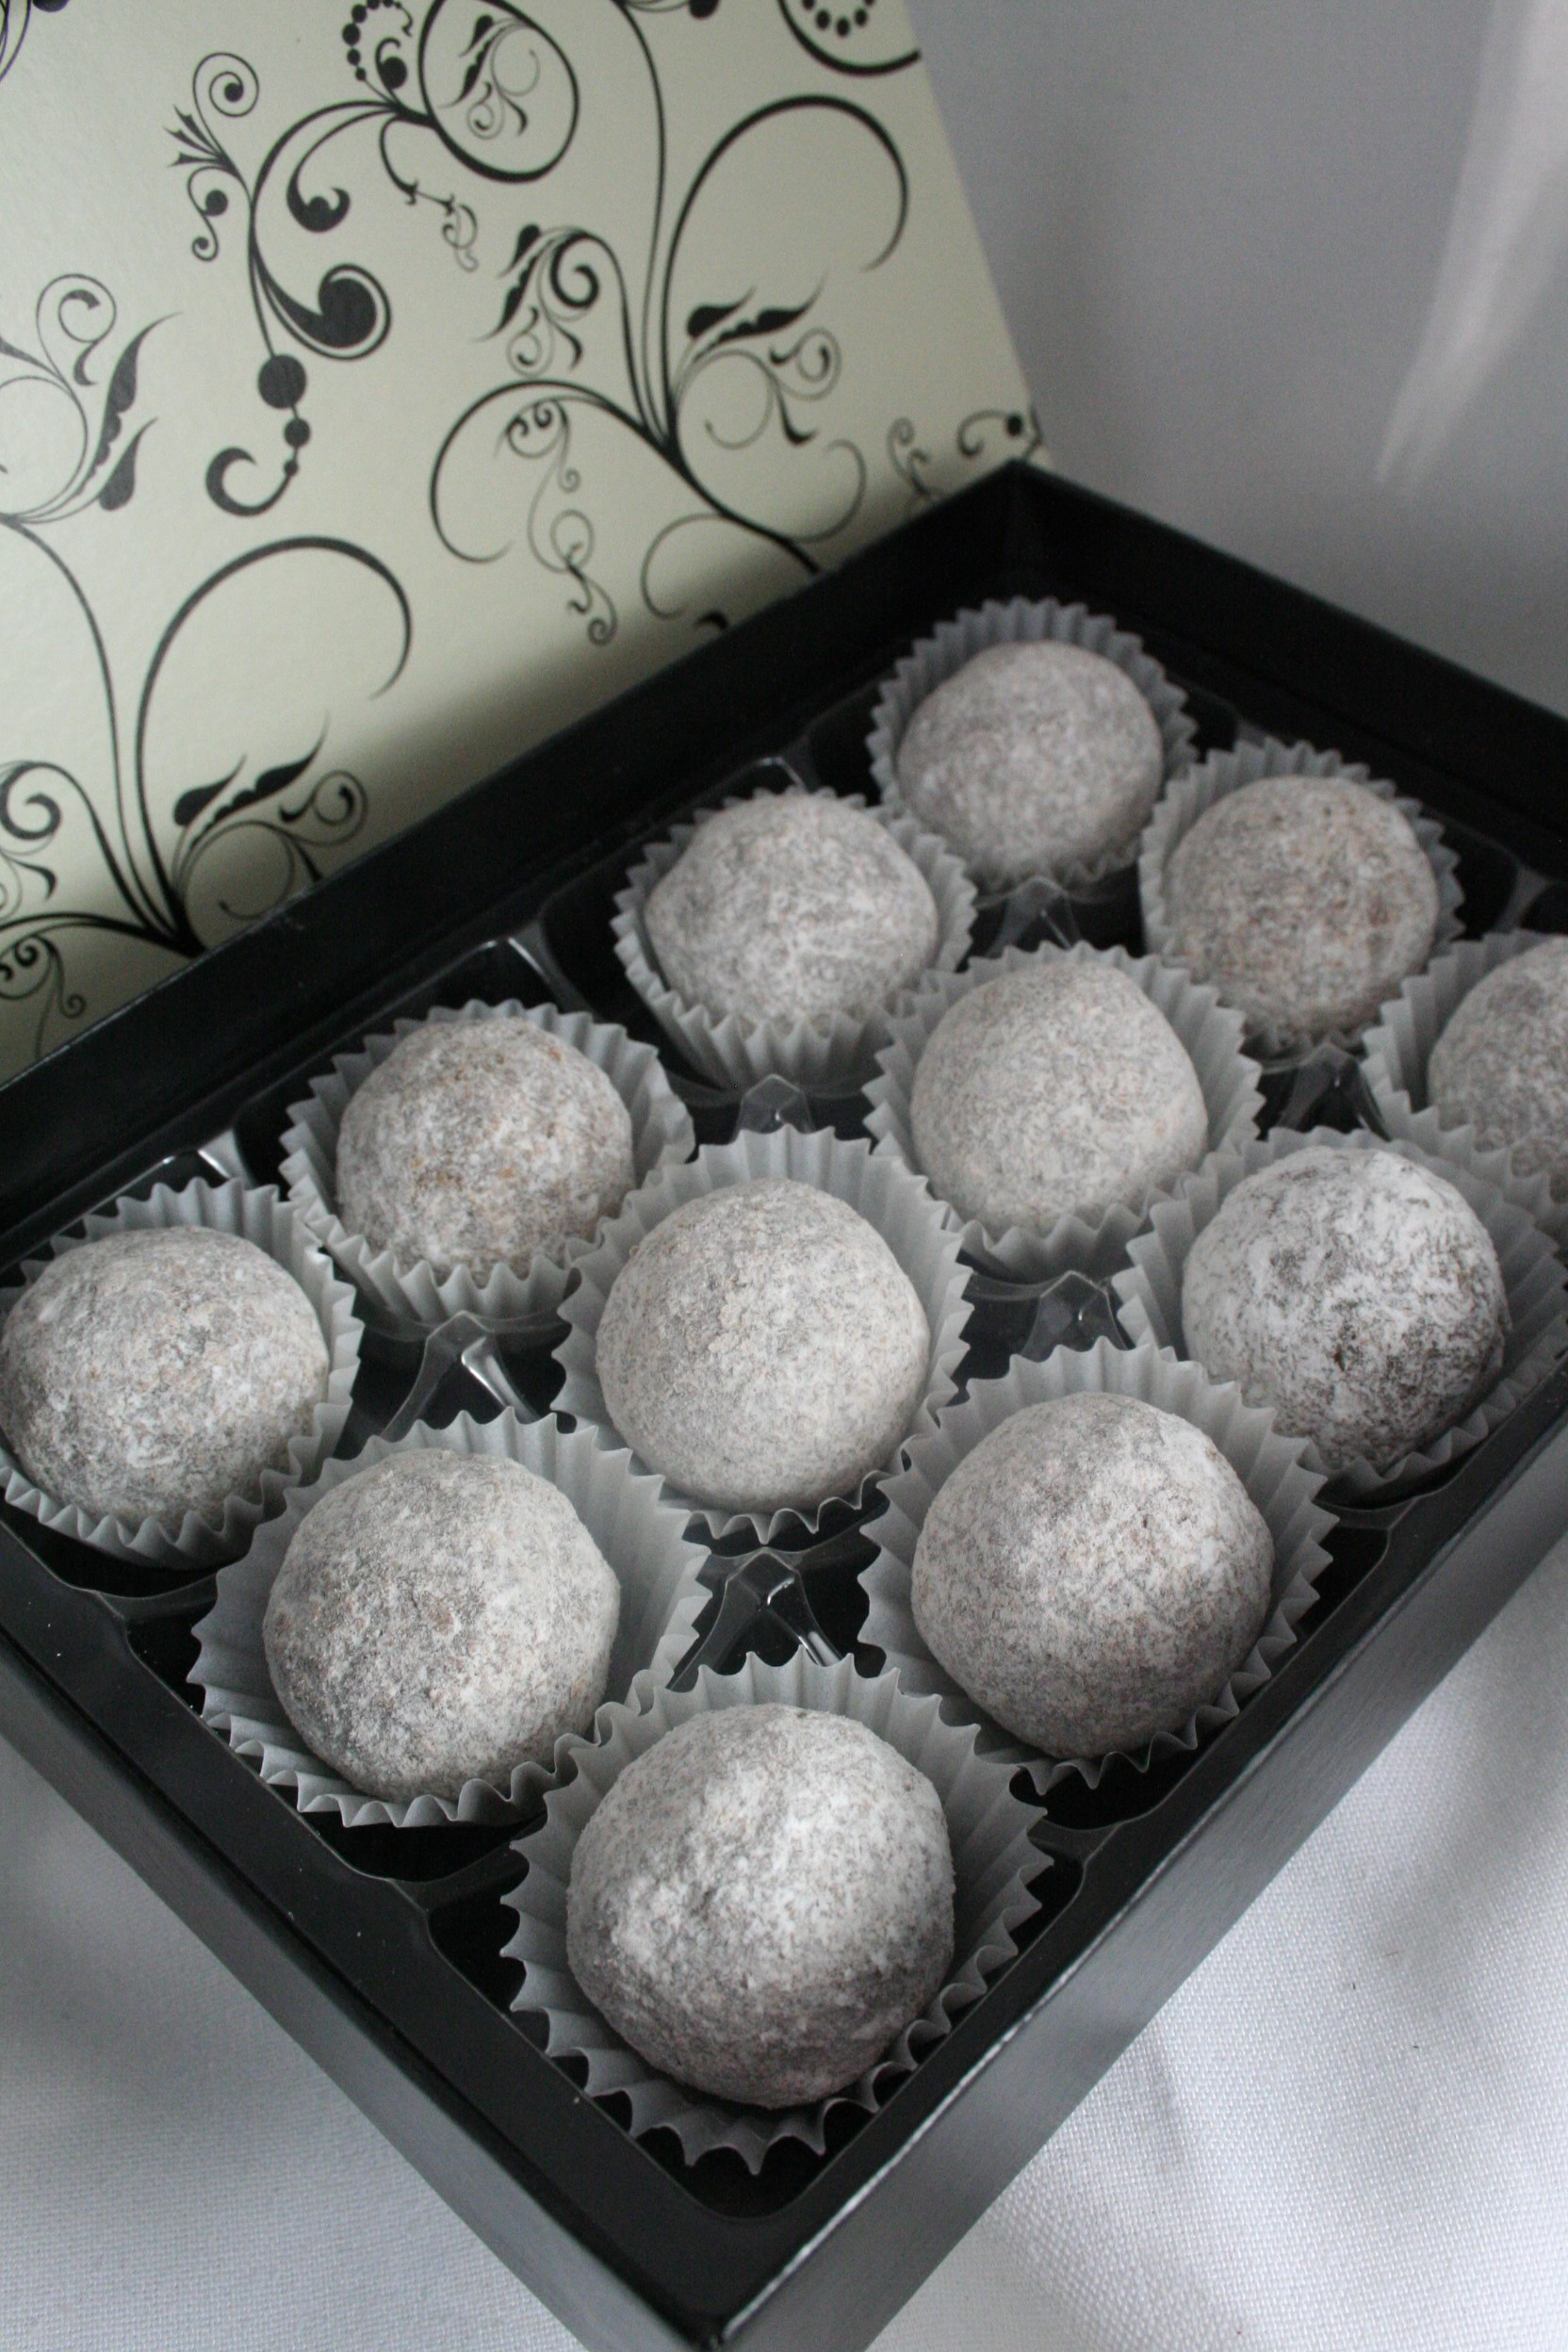 12 Milk Chocolate Marc de Champagne truffles. (Contain alcohol)